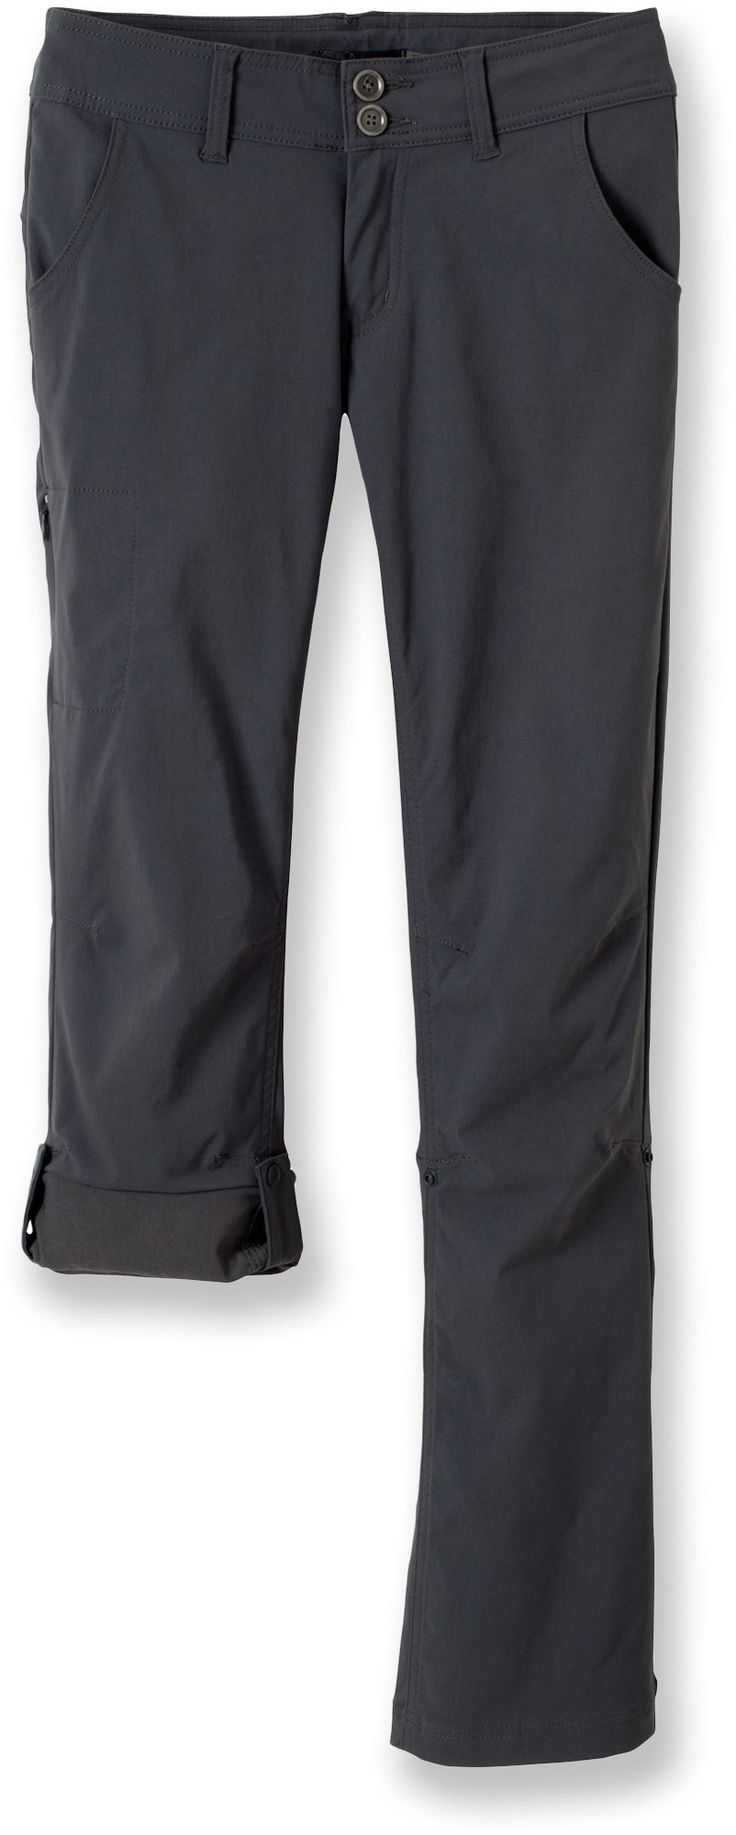 Cool Many Outdoor Stores Sell Hiking Pants, And This Is Where You Might Find The Kind  Here Are Some Of The Big Ones To Consider Quick Dry Pants Women Who Are Traveling In Outdoor Environments, Or Just Planning To Handwash Clothing